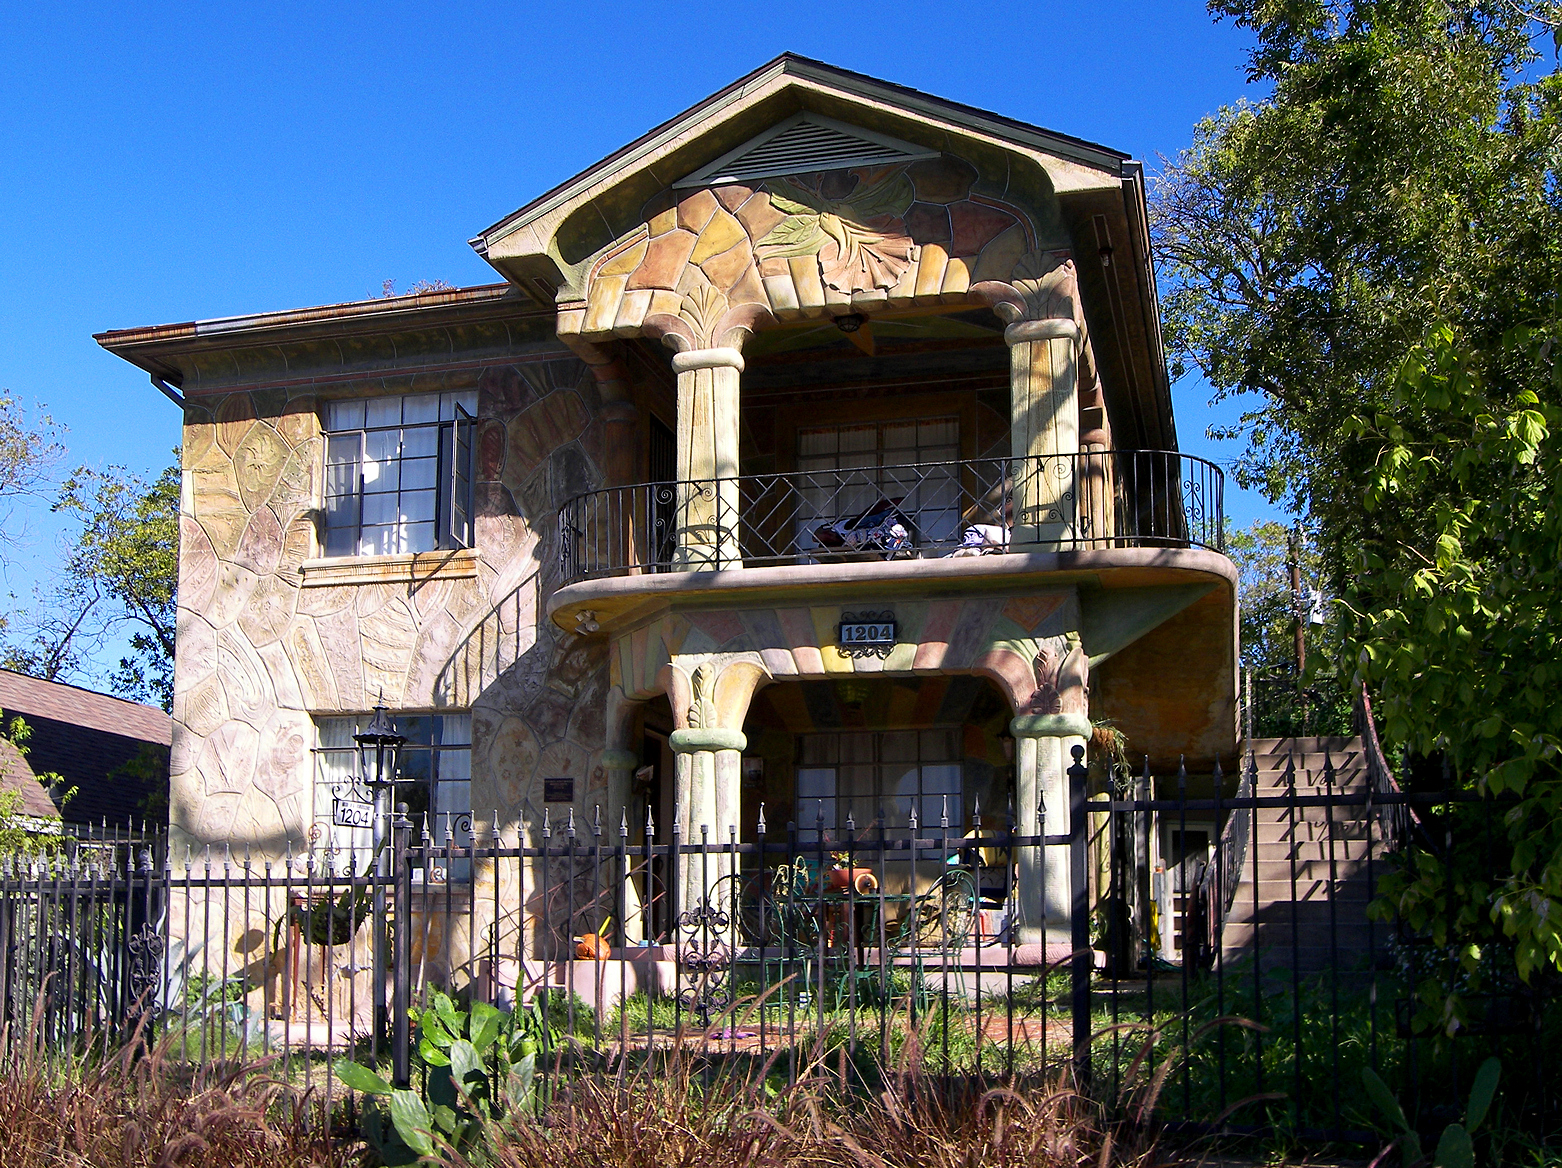 The Genaro P. and Carolina Briones House is one of the more unique homes in Austin, as it is an excellent example of Texas folk architecture.